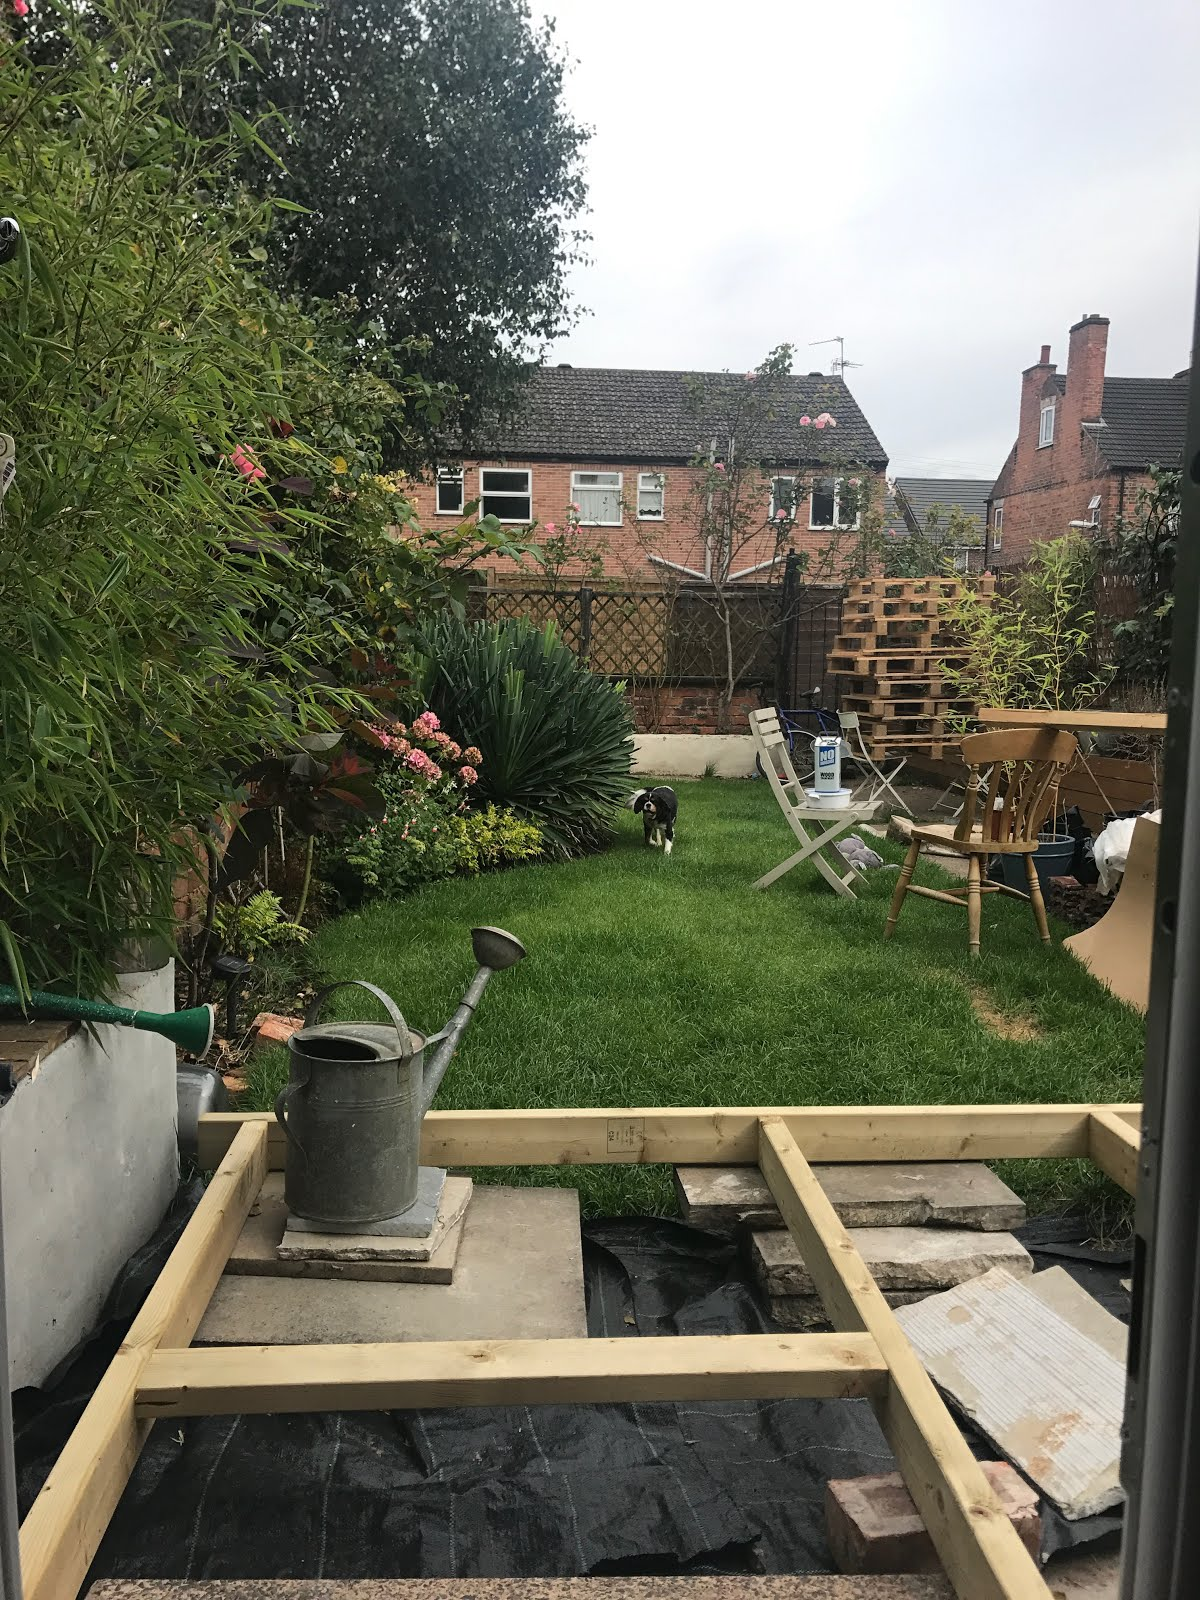 Using Paving Slabs to prop up decking